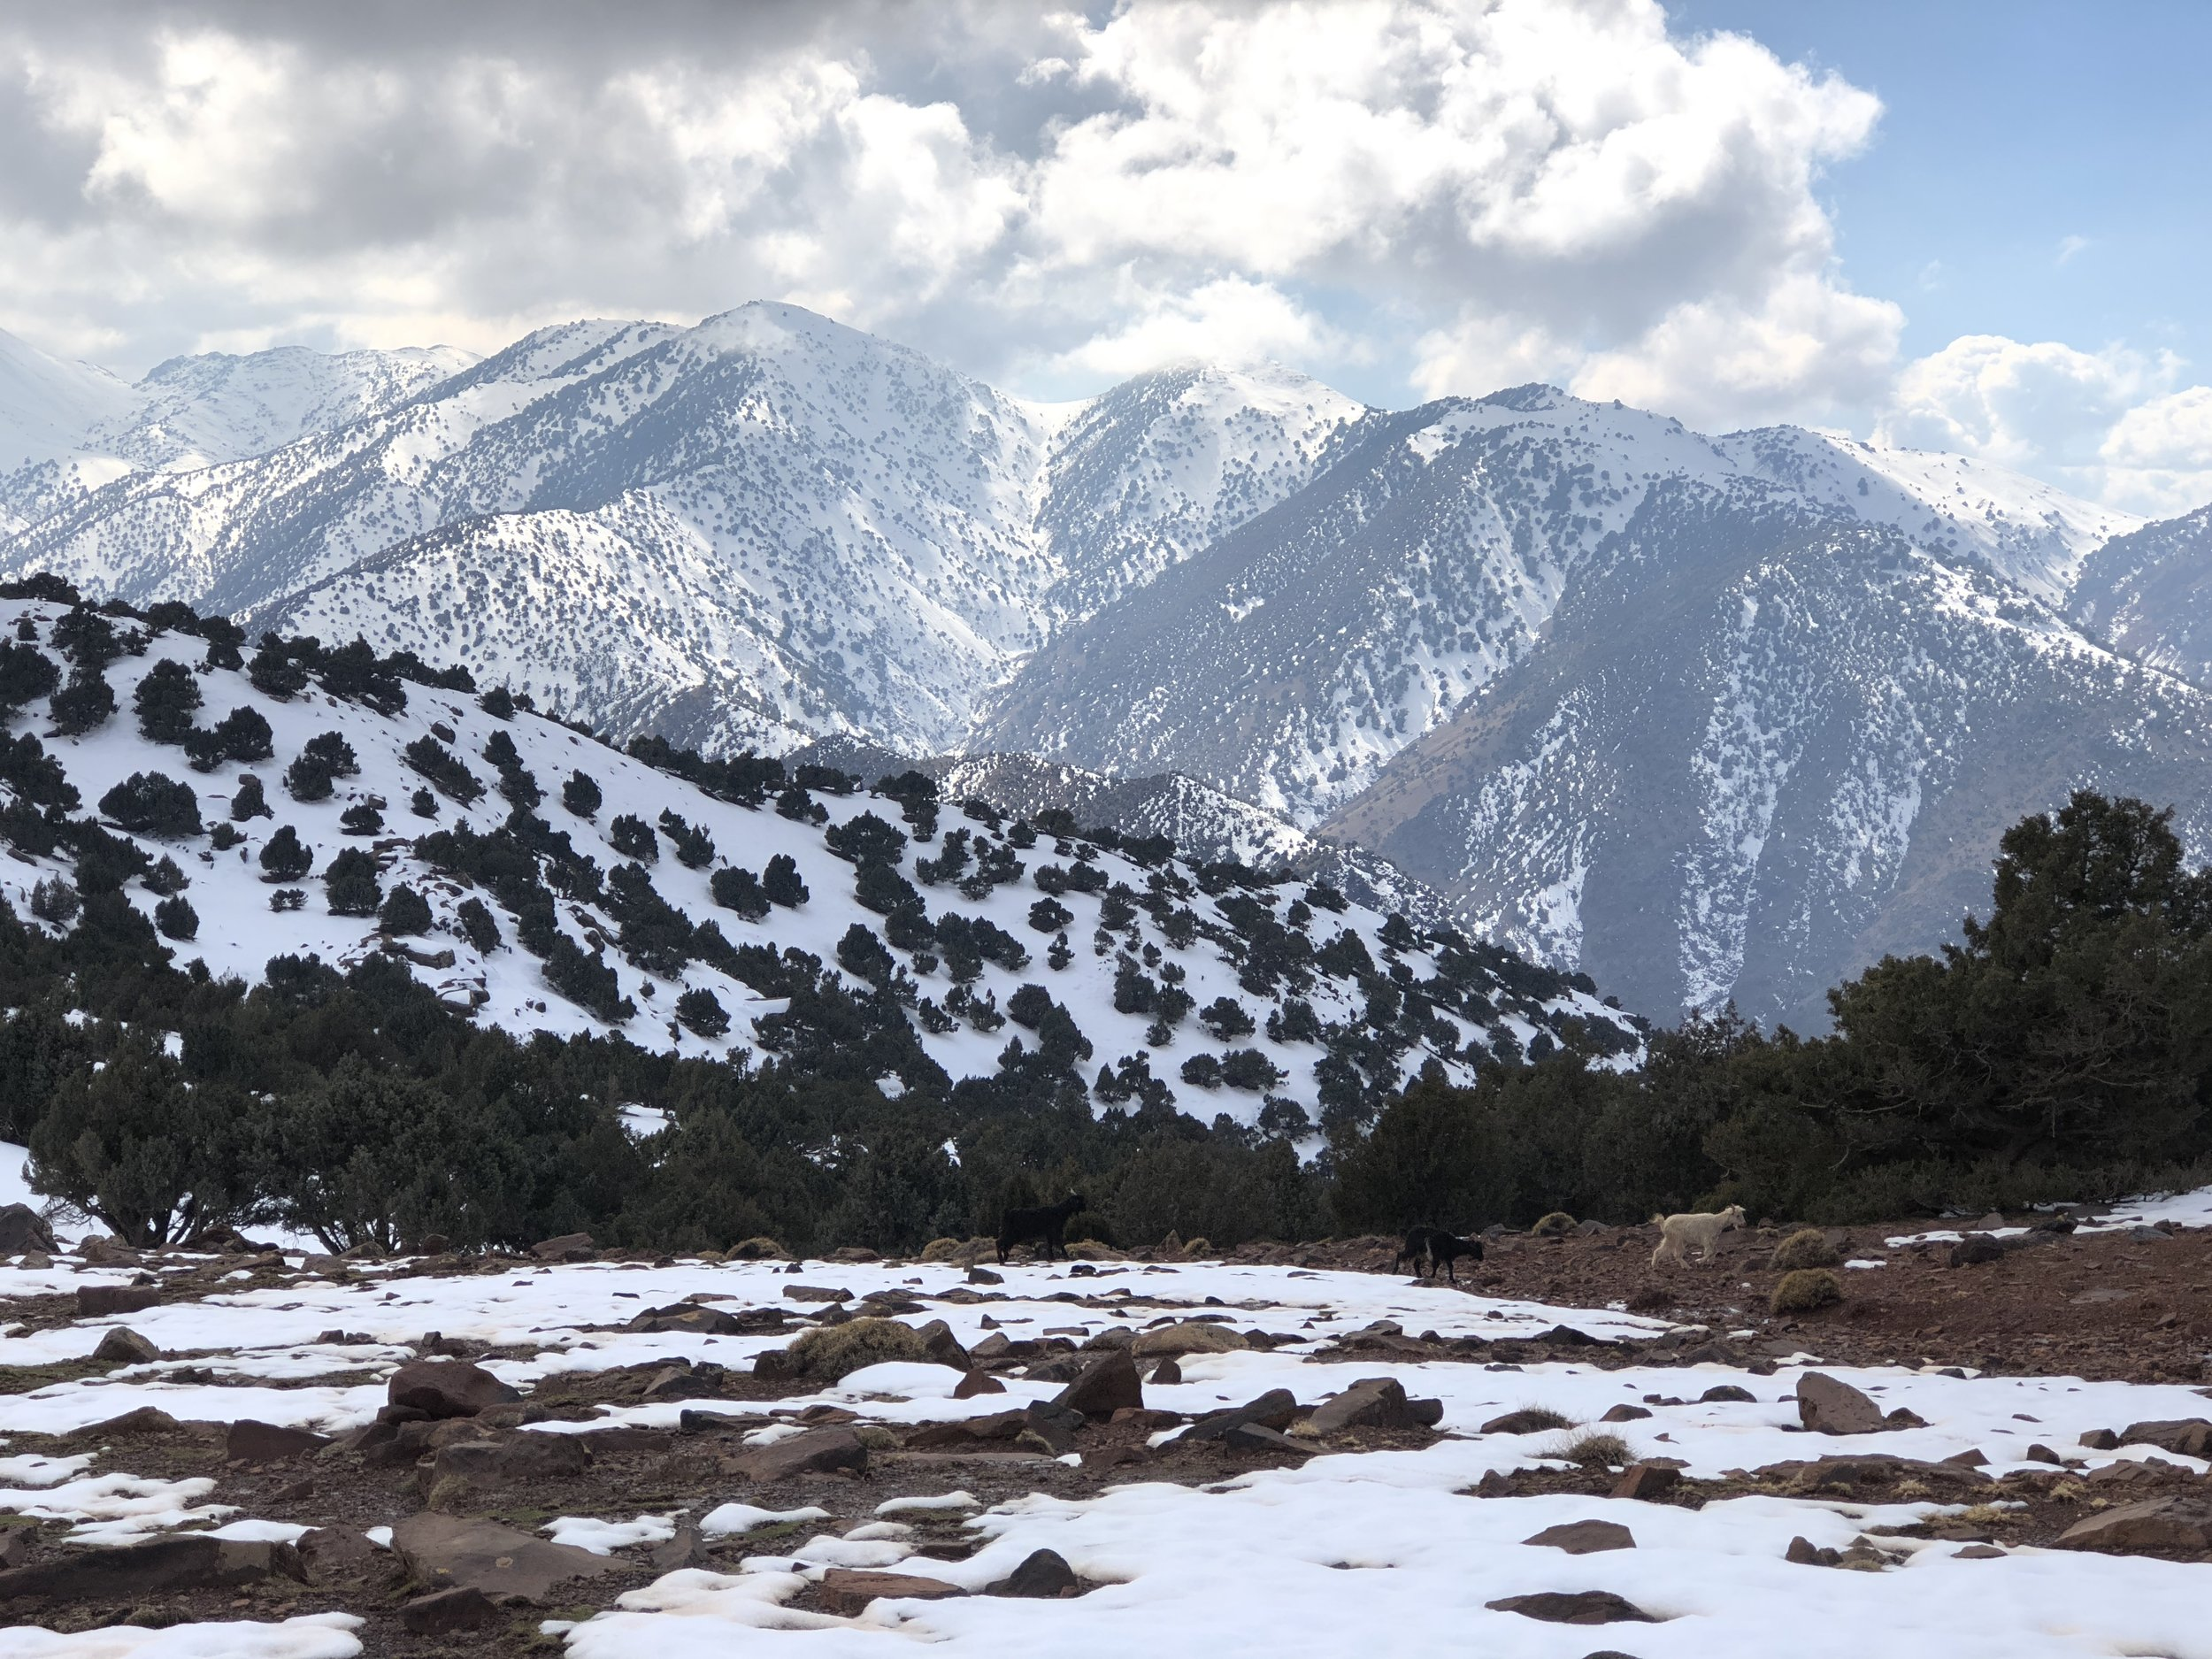 View from the Tizi Oudite pass